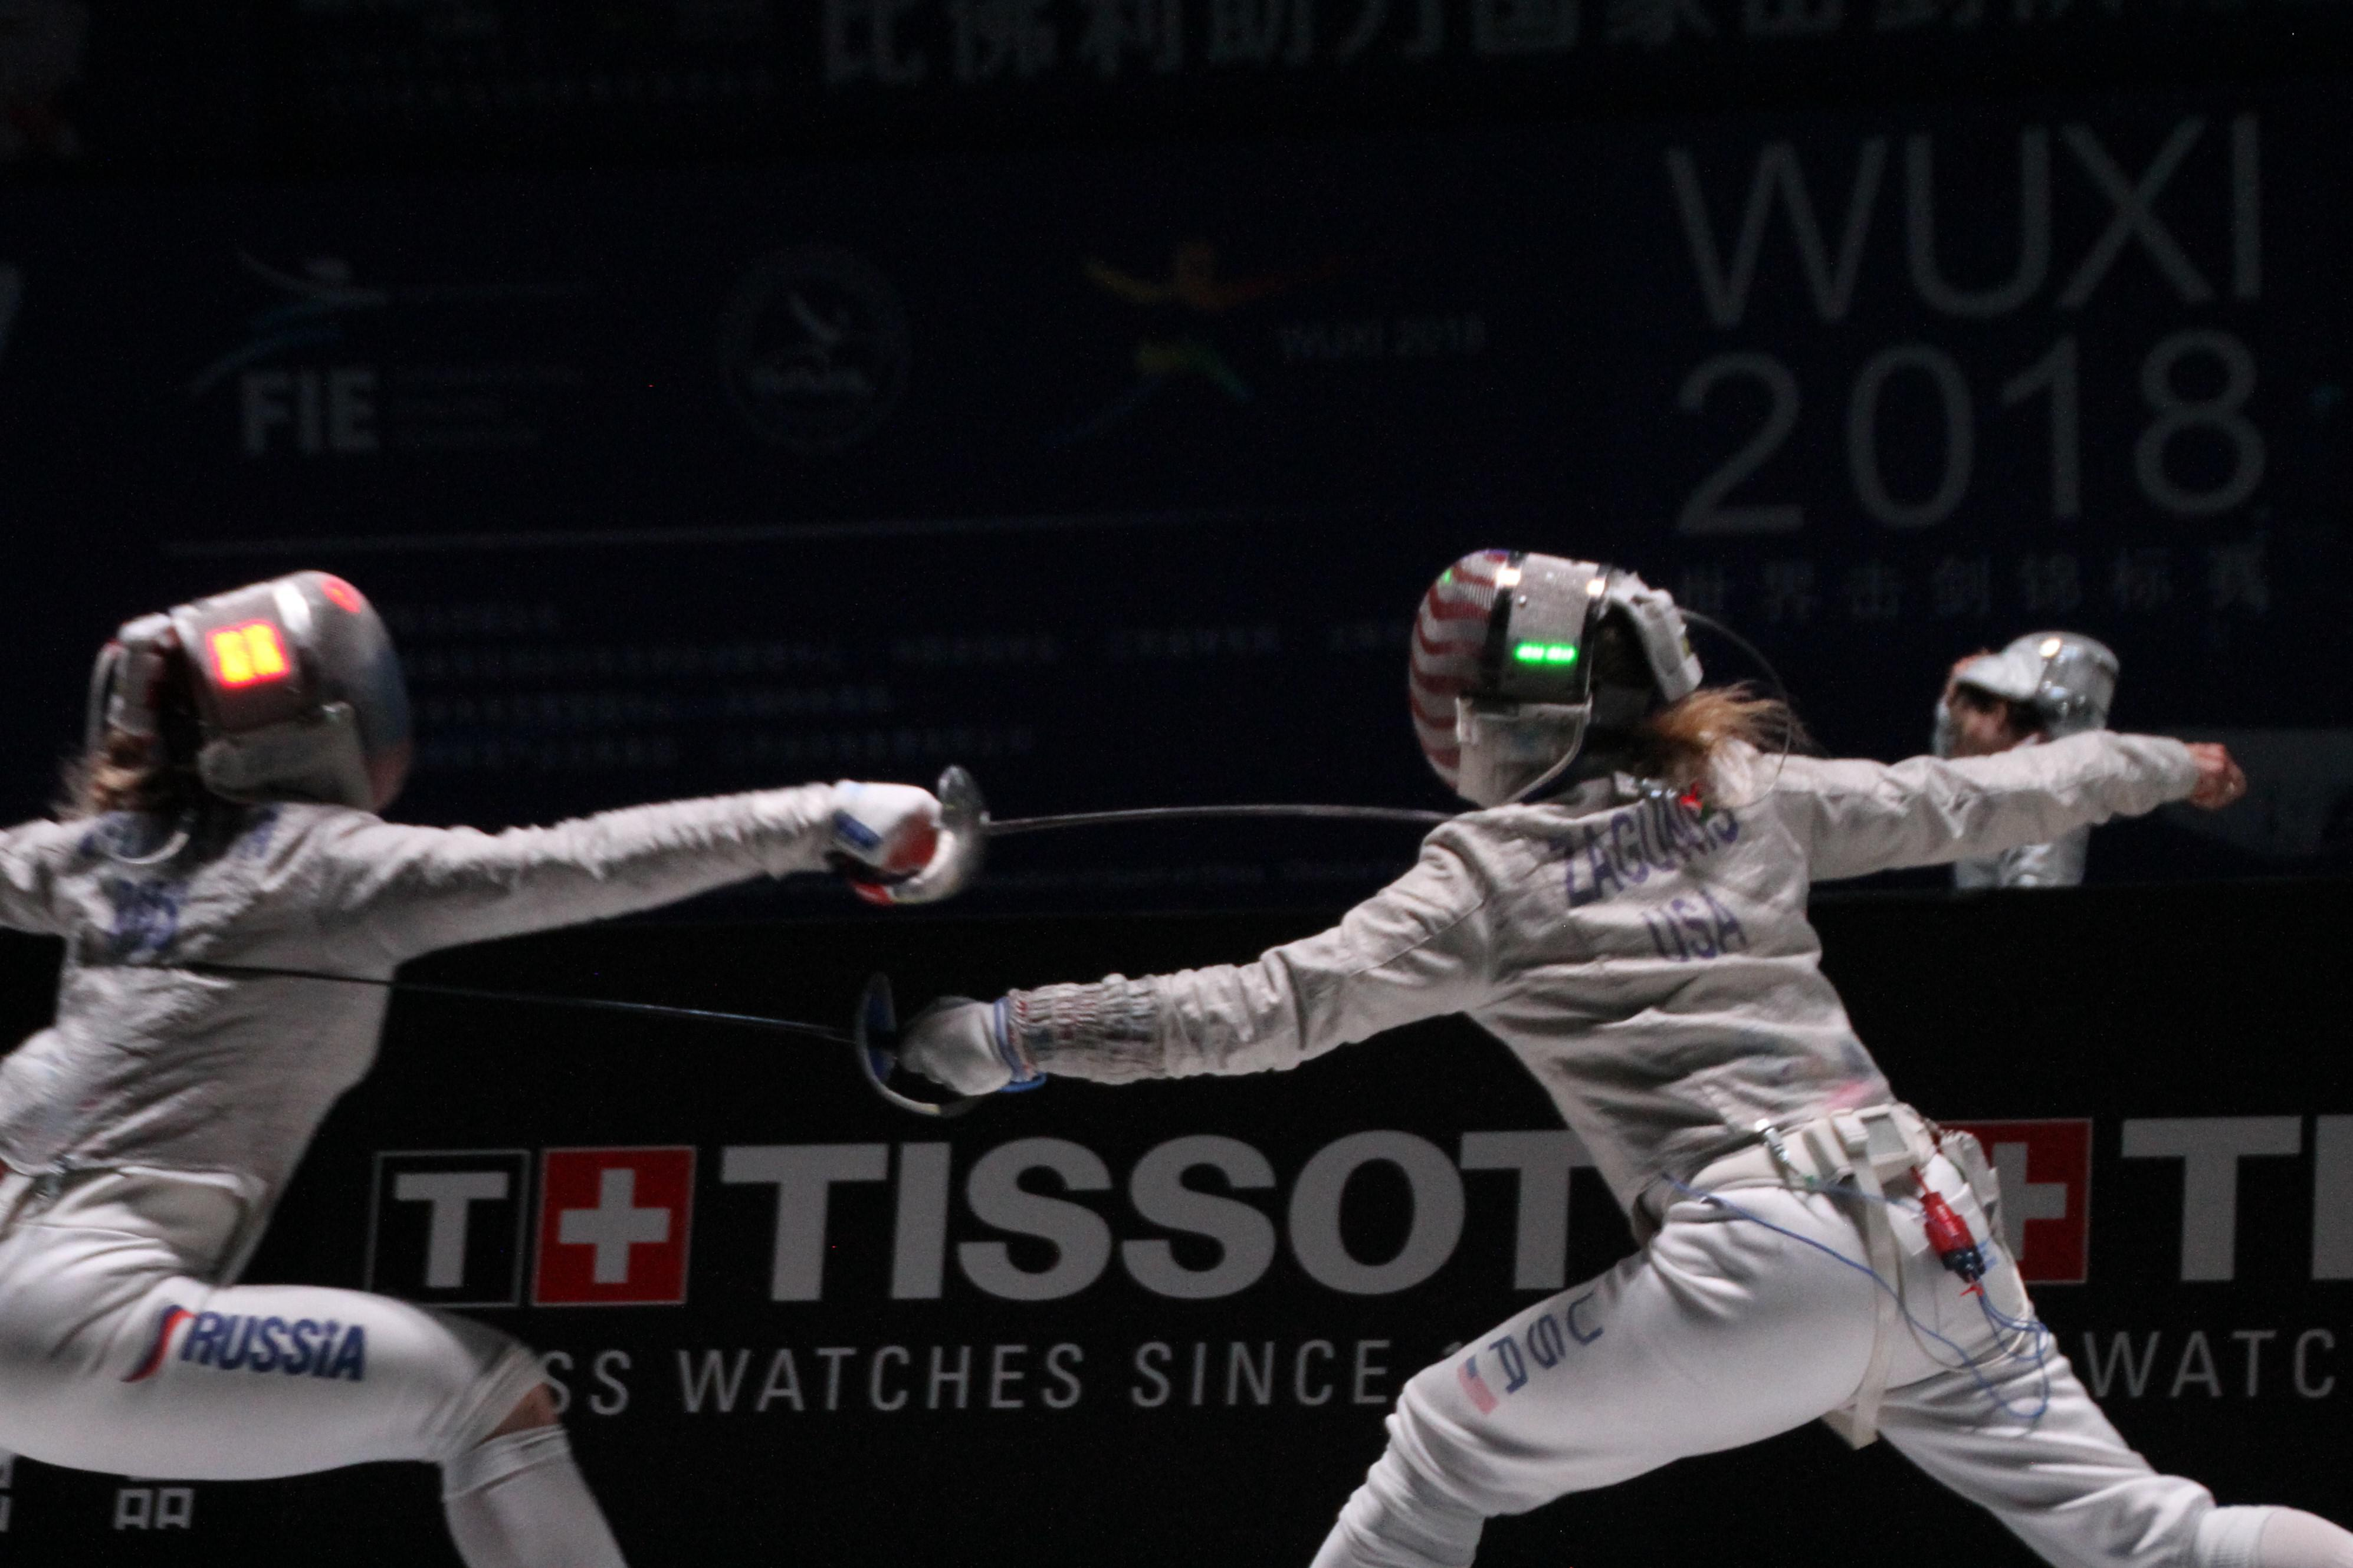 Tickets on Sale Now for Absolute Fencing Gear® Salt Lake